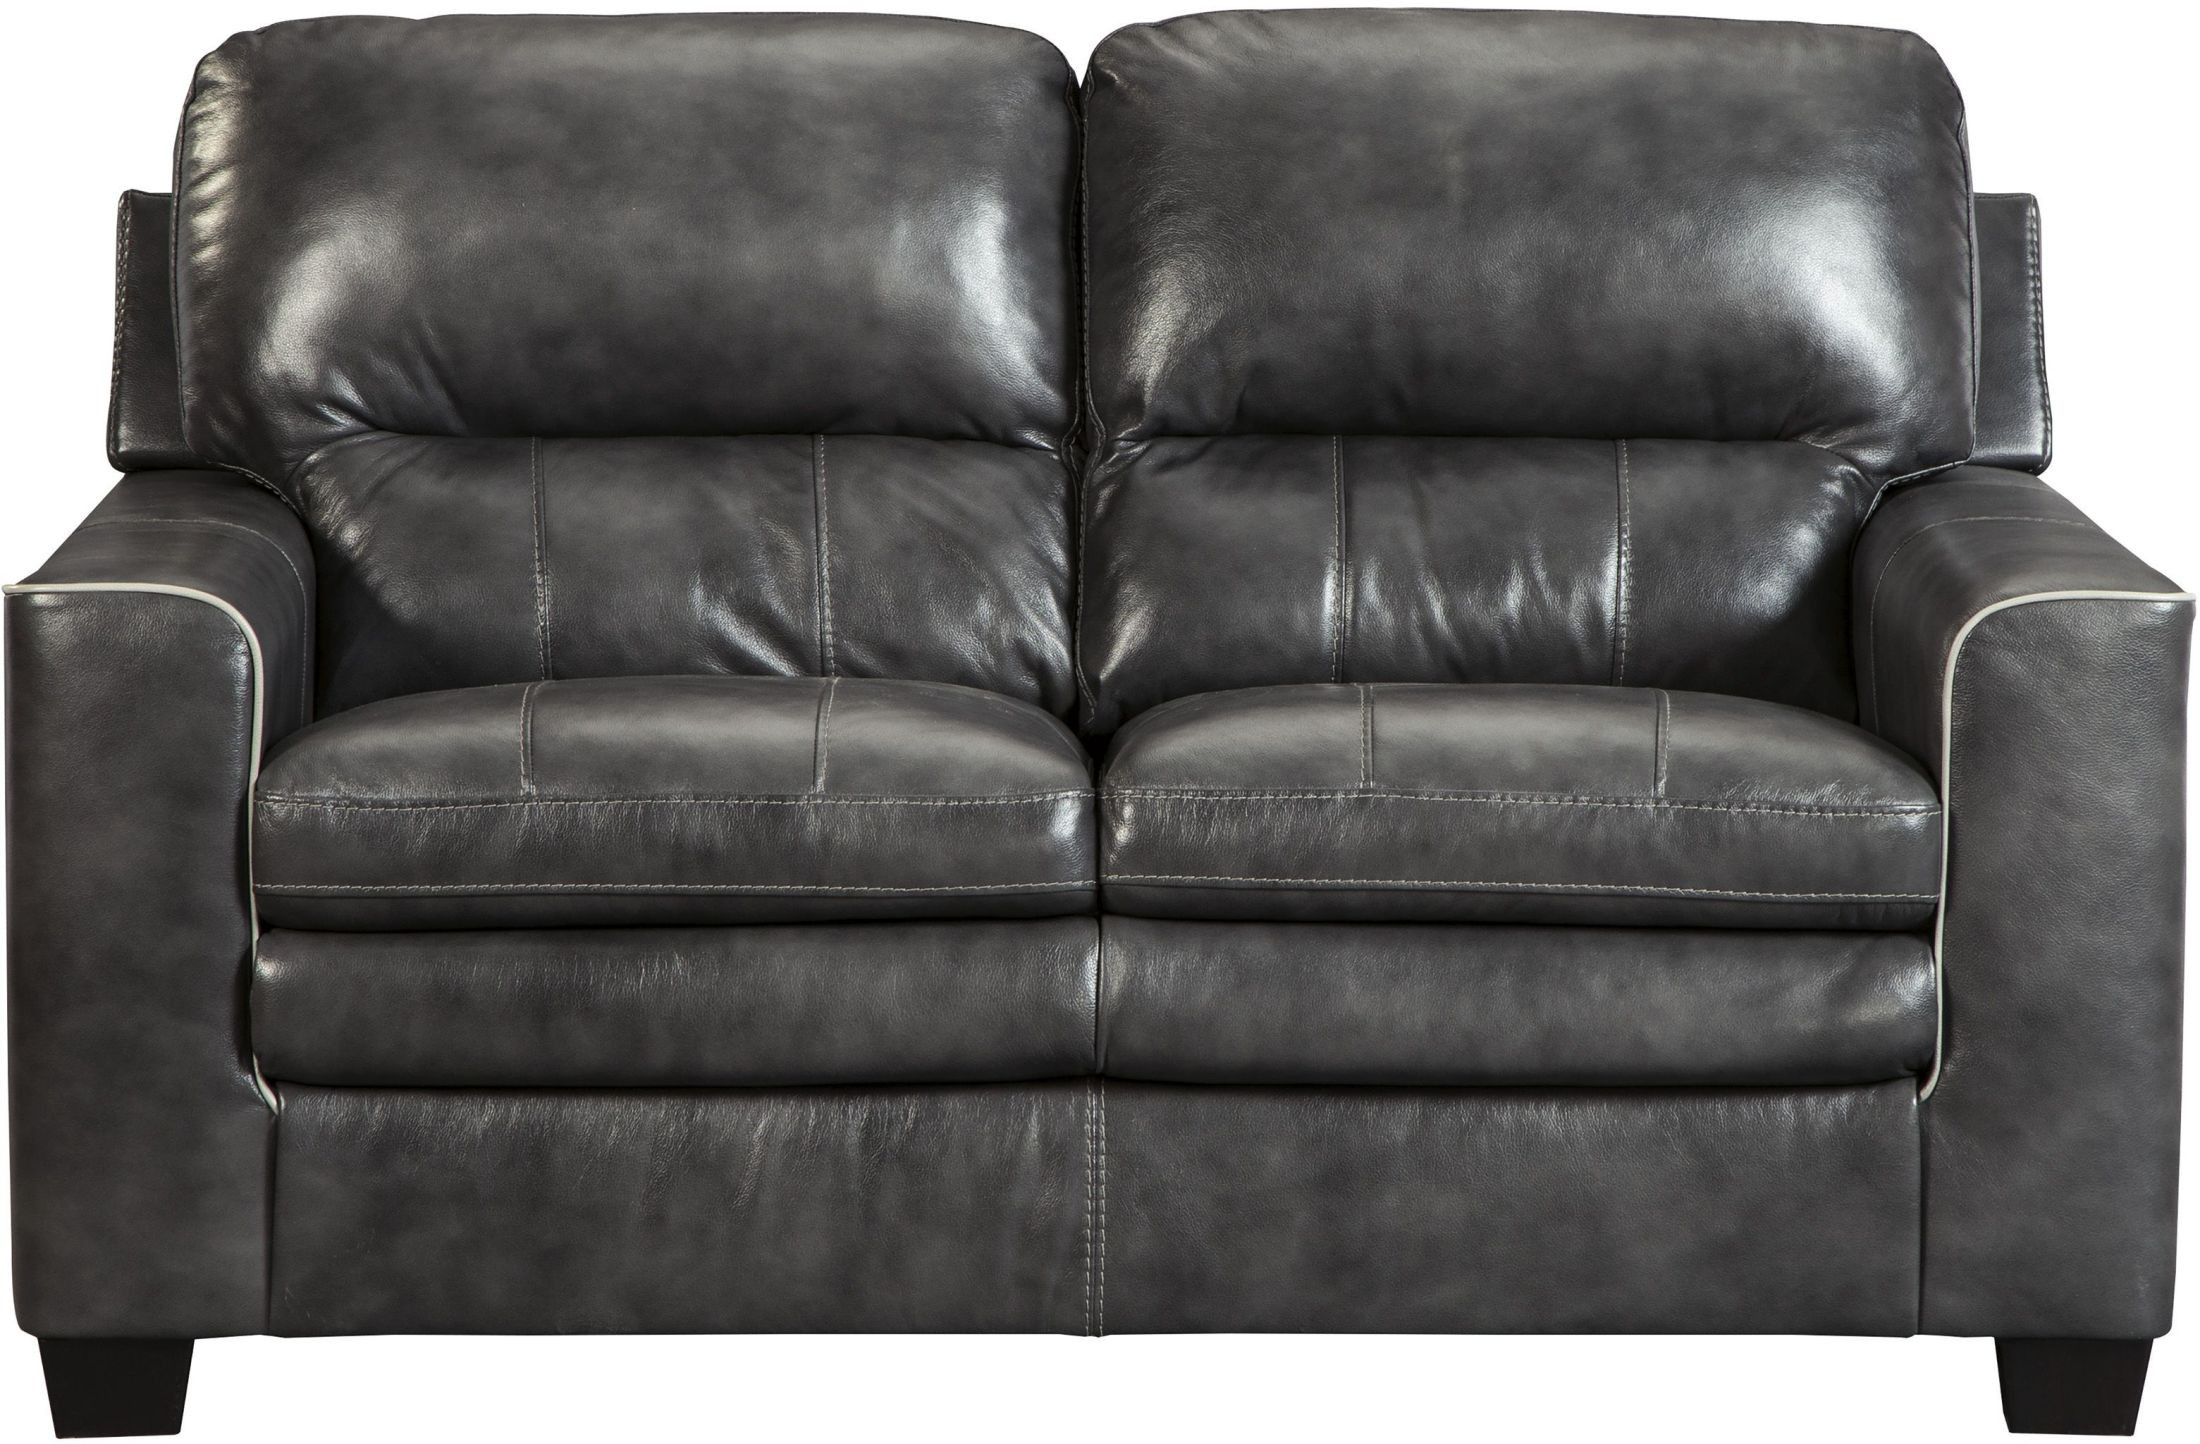 Gleason Charcoal Loveseat 1570235 Ashley